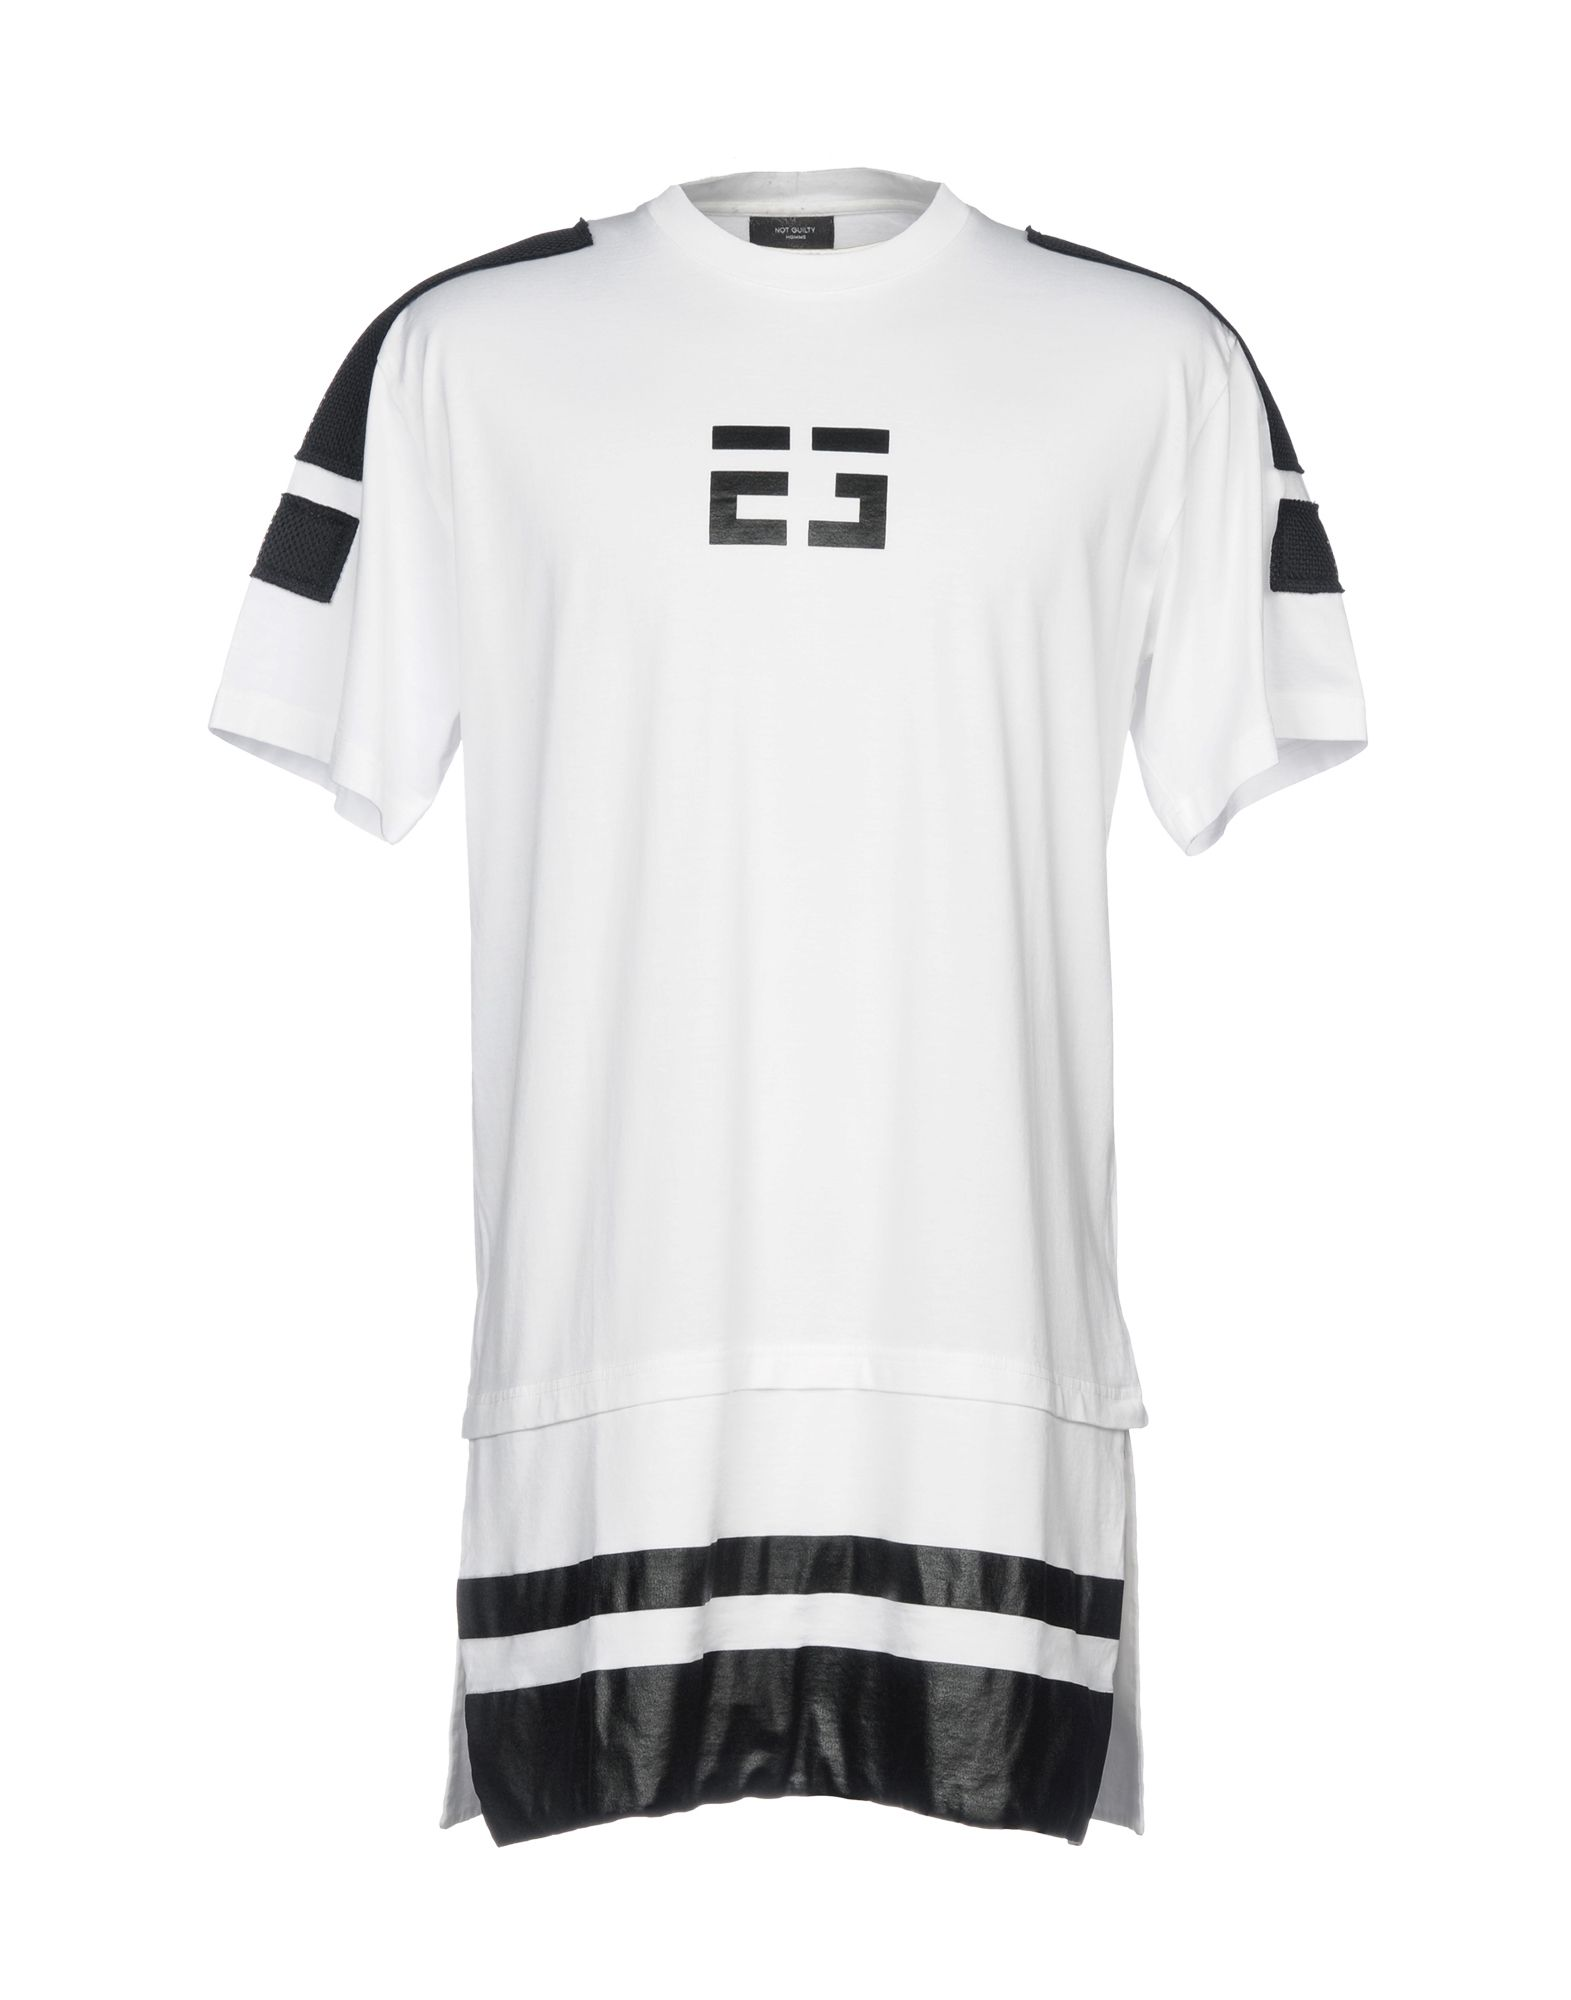 NOT GUILTY HOMME T-Shirt in White